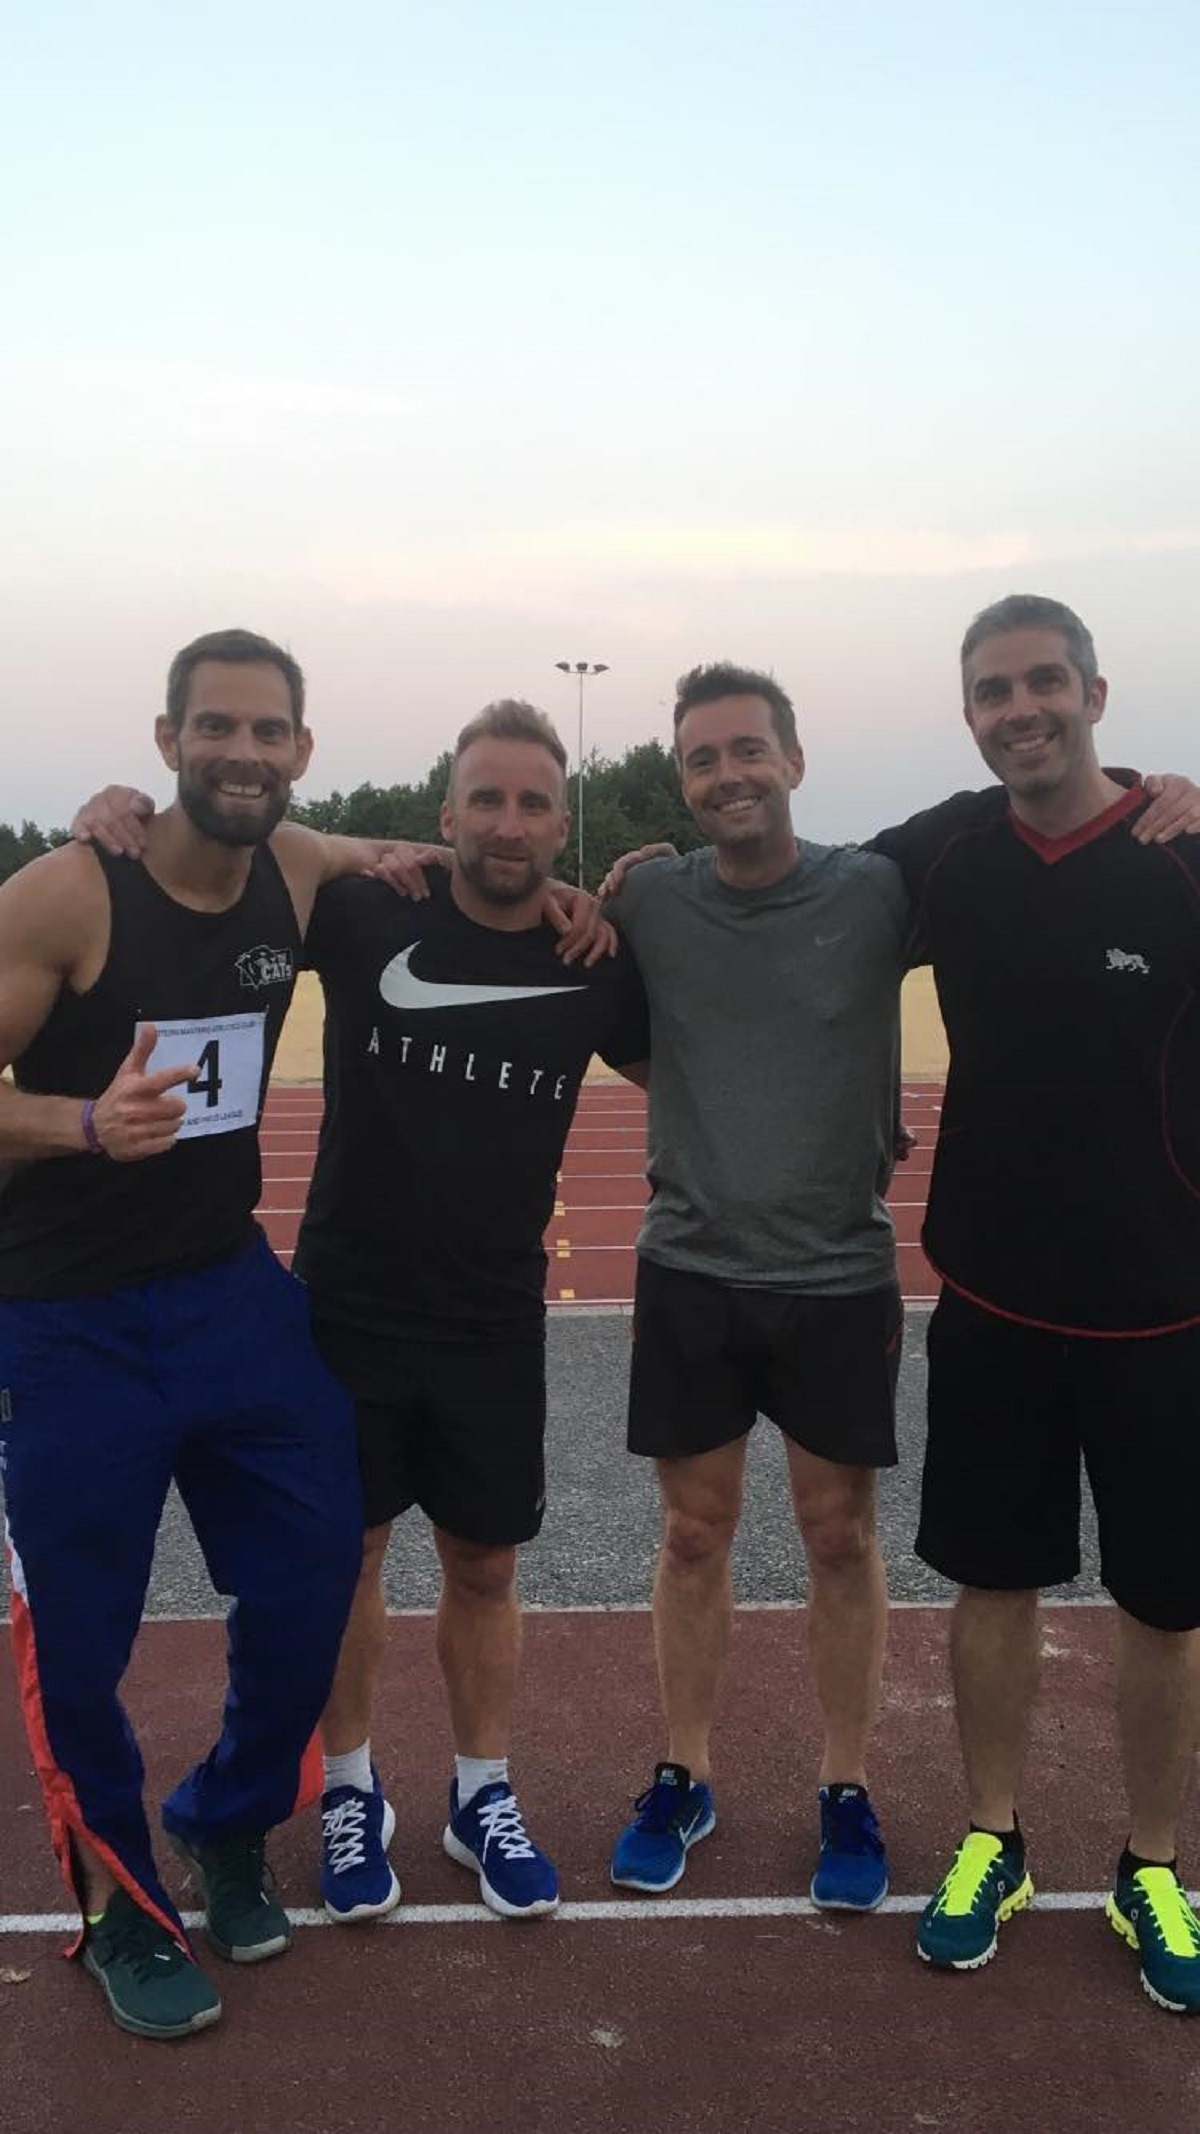 Fantastic four - the Colchester and Tendring Ipswich relay team. Left to right: Justin Hubbard, Aaron Bollu, Lee Bowker, Dan Gartlan